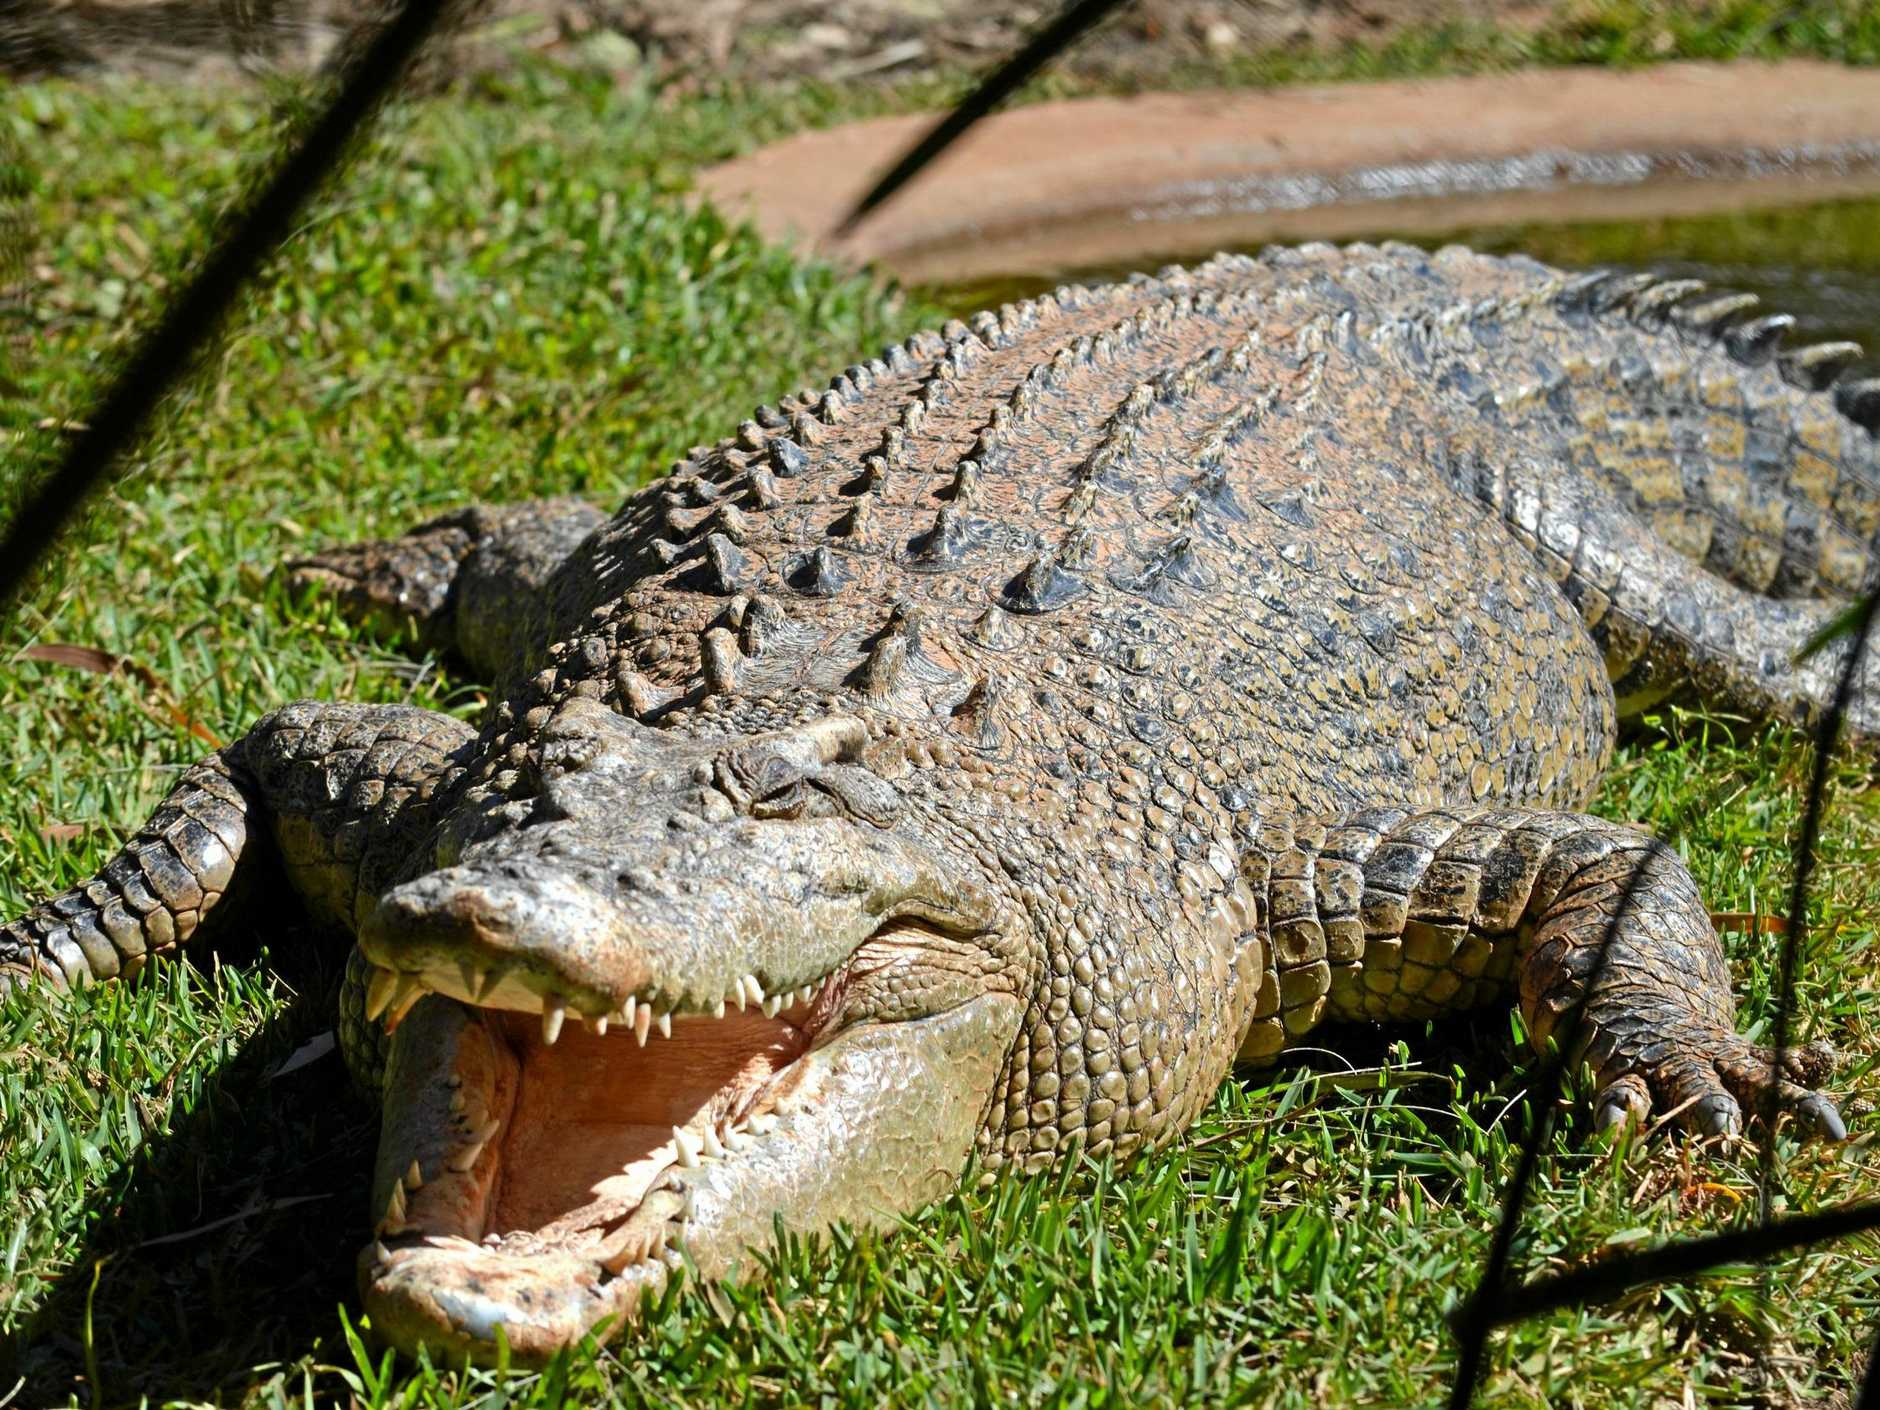 FIERCE: Are crocodiles moving further south or is there just more people on the water seeing them?